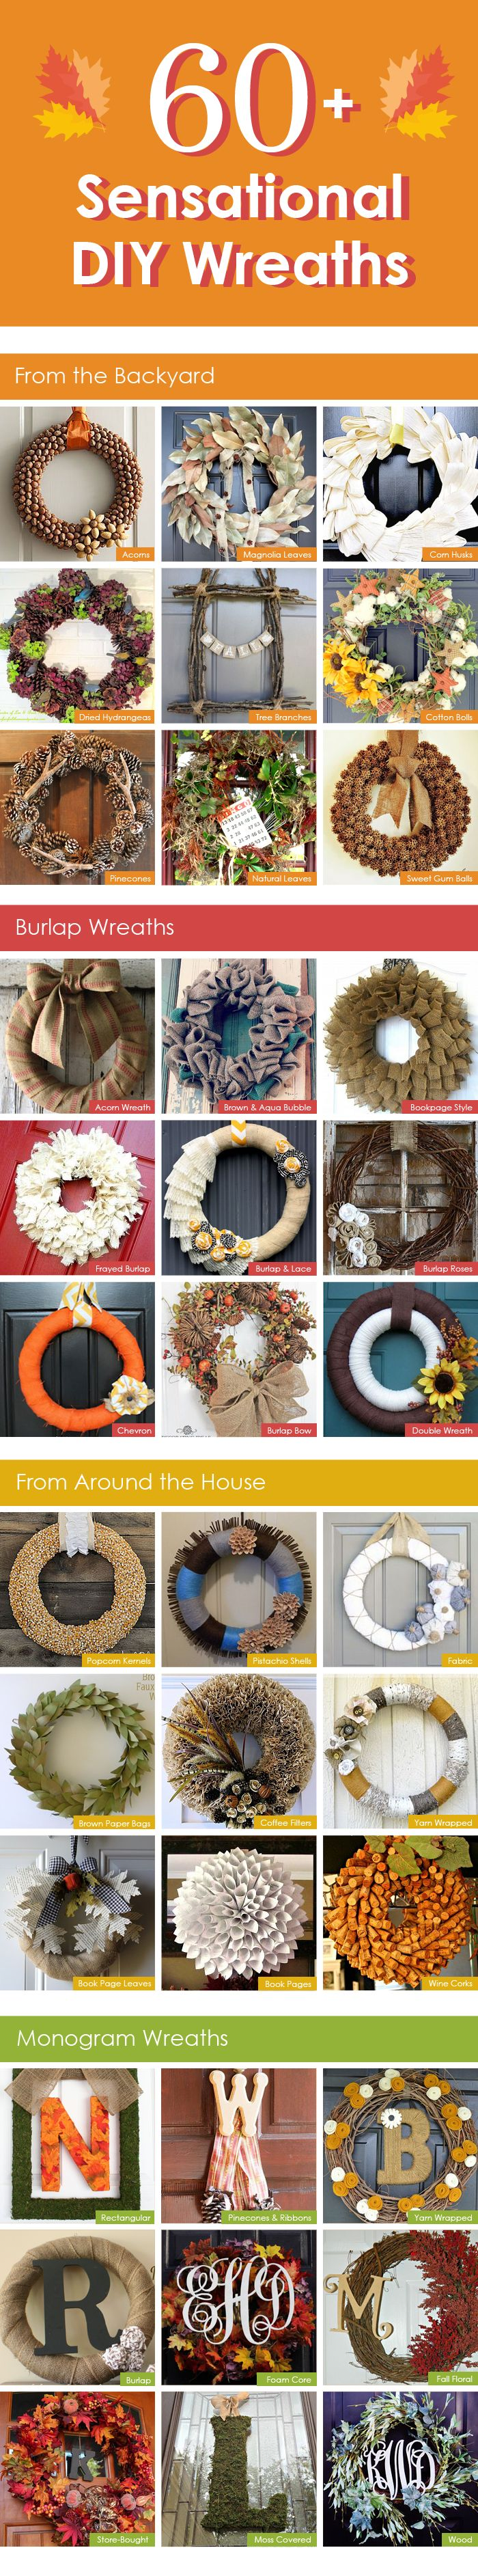 Erin Hills... 60+ Sensational DIY Wreaths For the Fall  Wreaths from things in the backyard, around the home, burlap wreaths, and monogram wreaths!